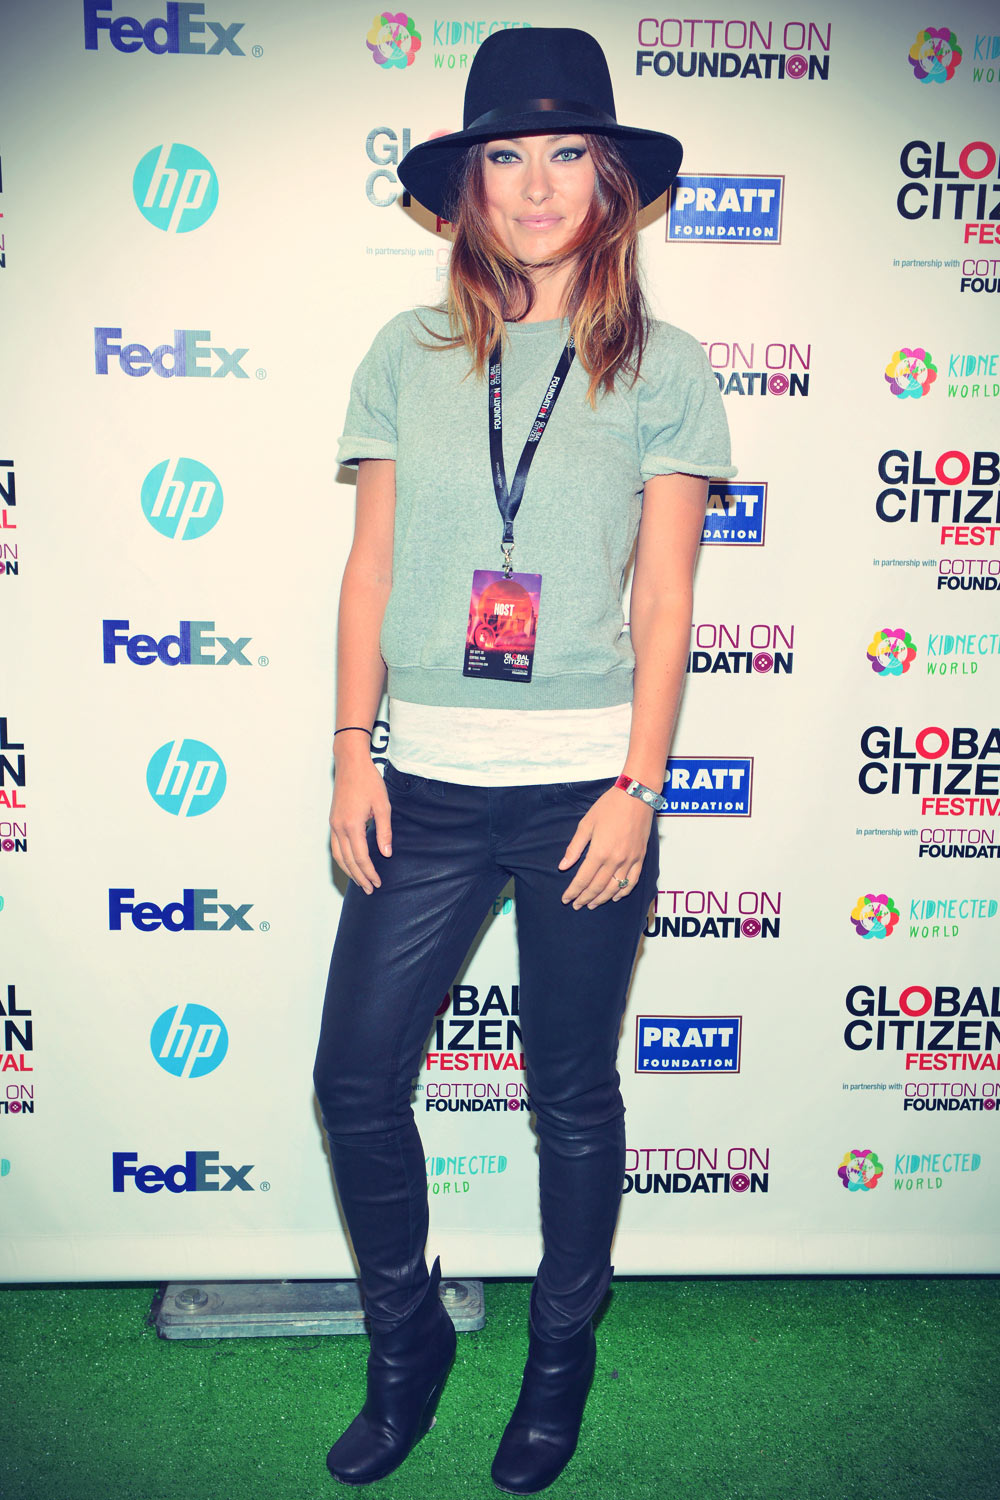 Olivia Wilde attends 2013 Global Citizen Festival in Central Park